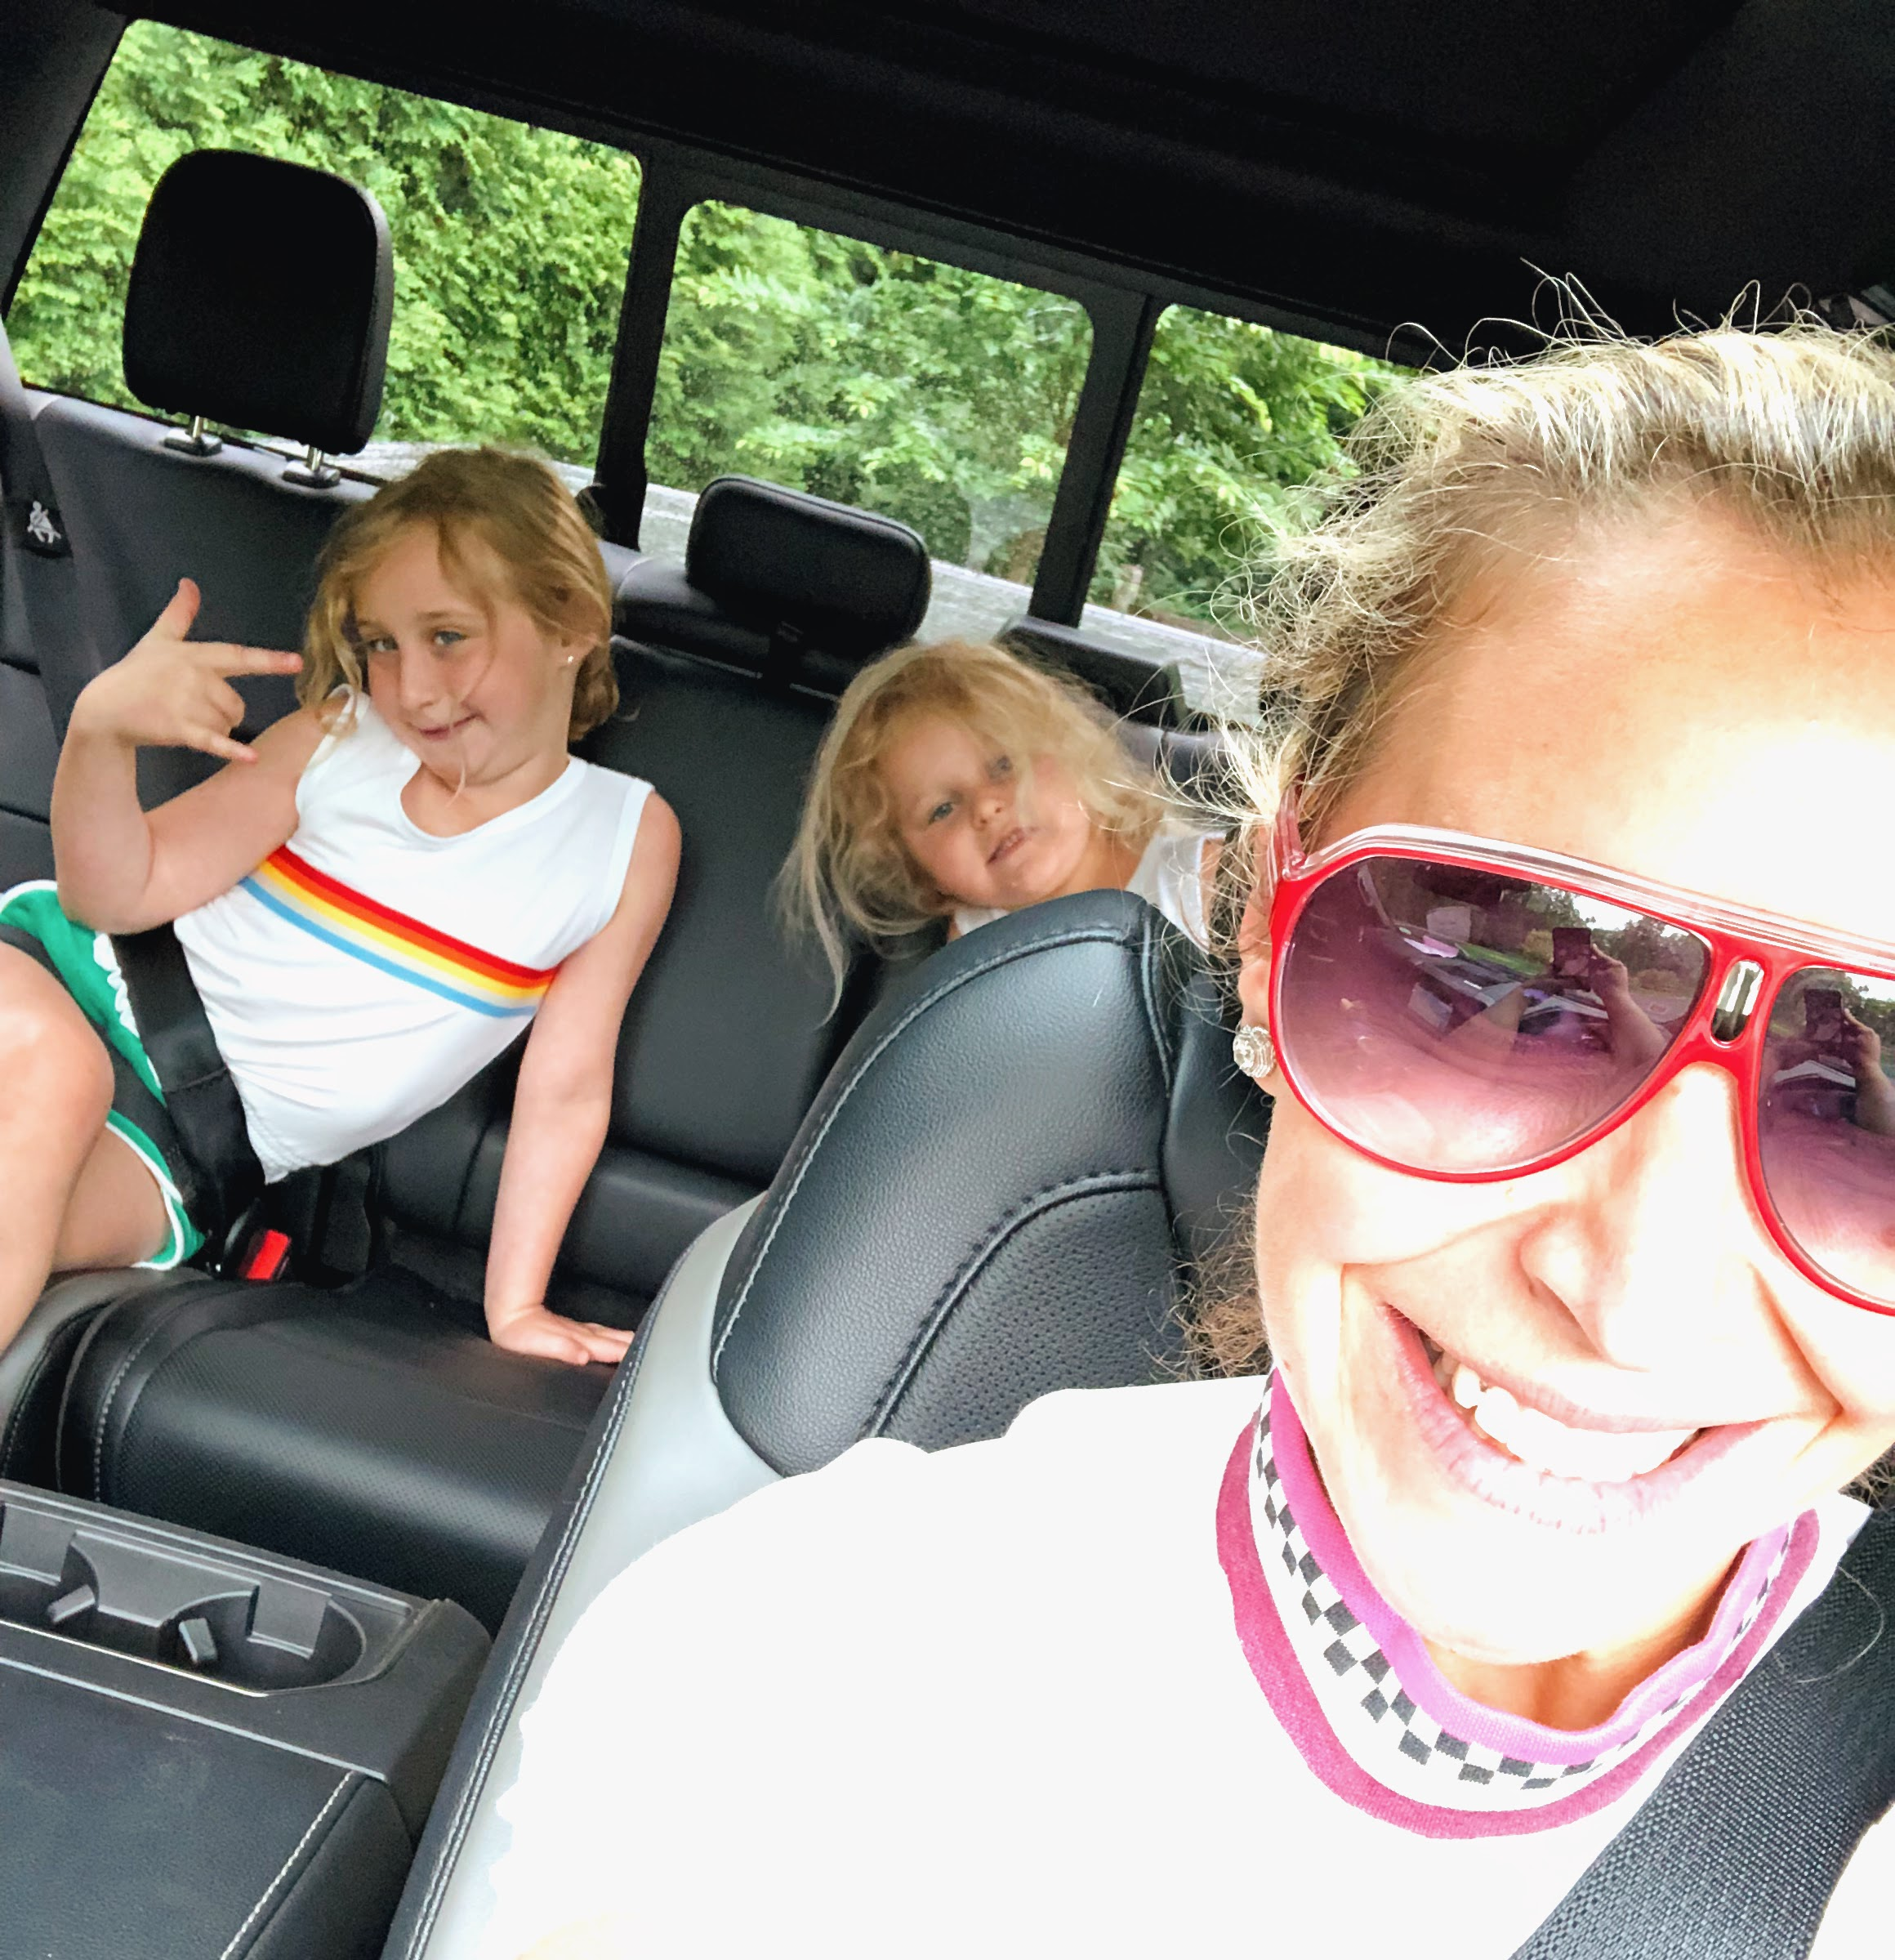 On the way to camp drop off Monday morning, coming off an epic (but exhausting!) long holiday weekend- in some ways worse for the wear, but in most ways, so grateful for every crazy moment.